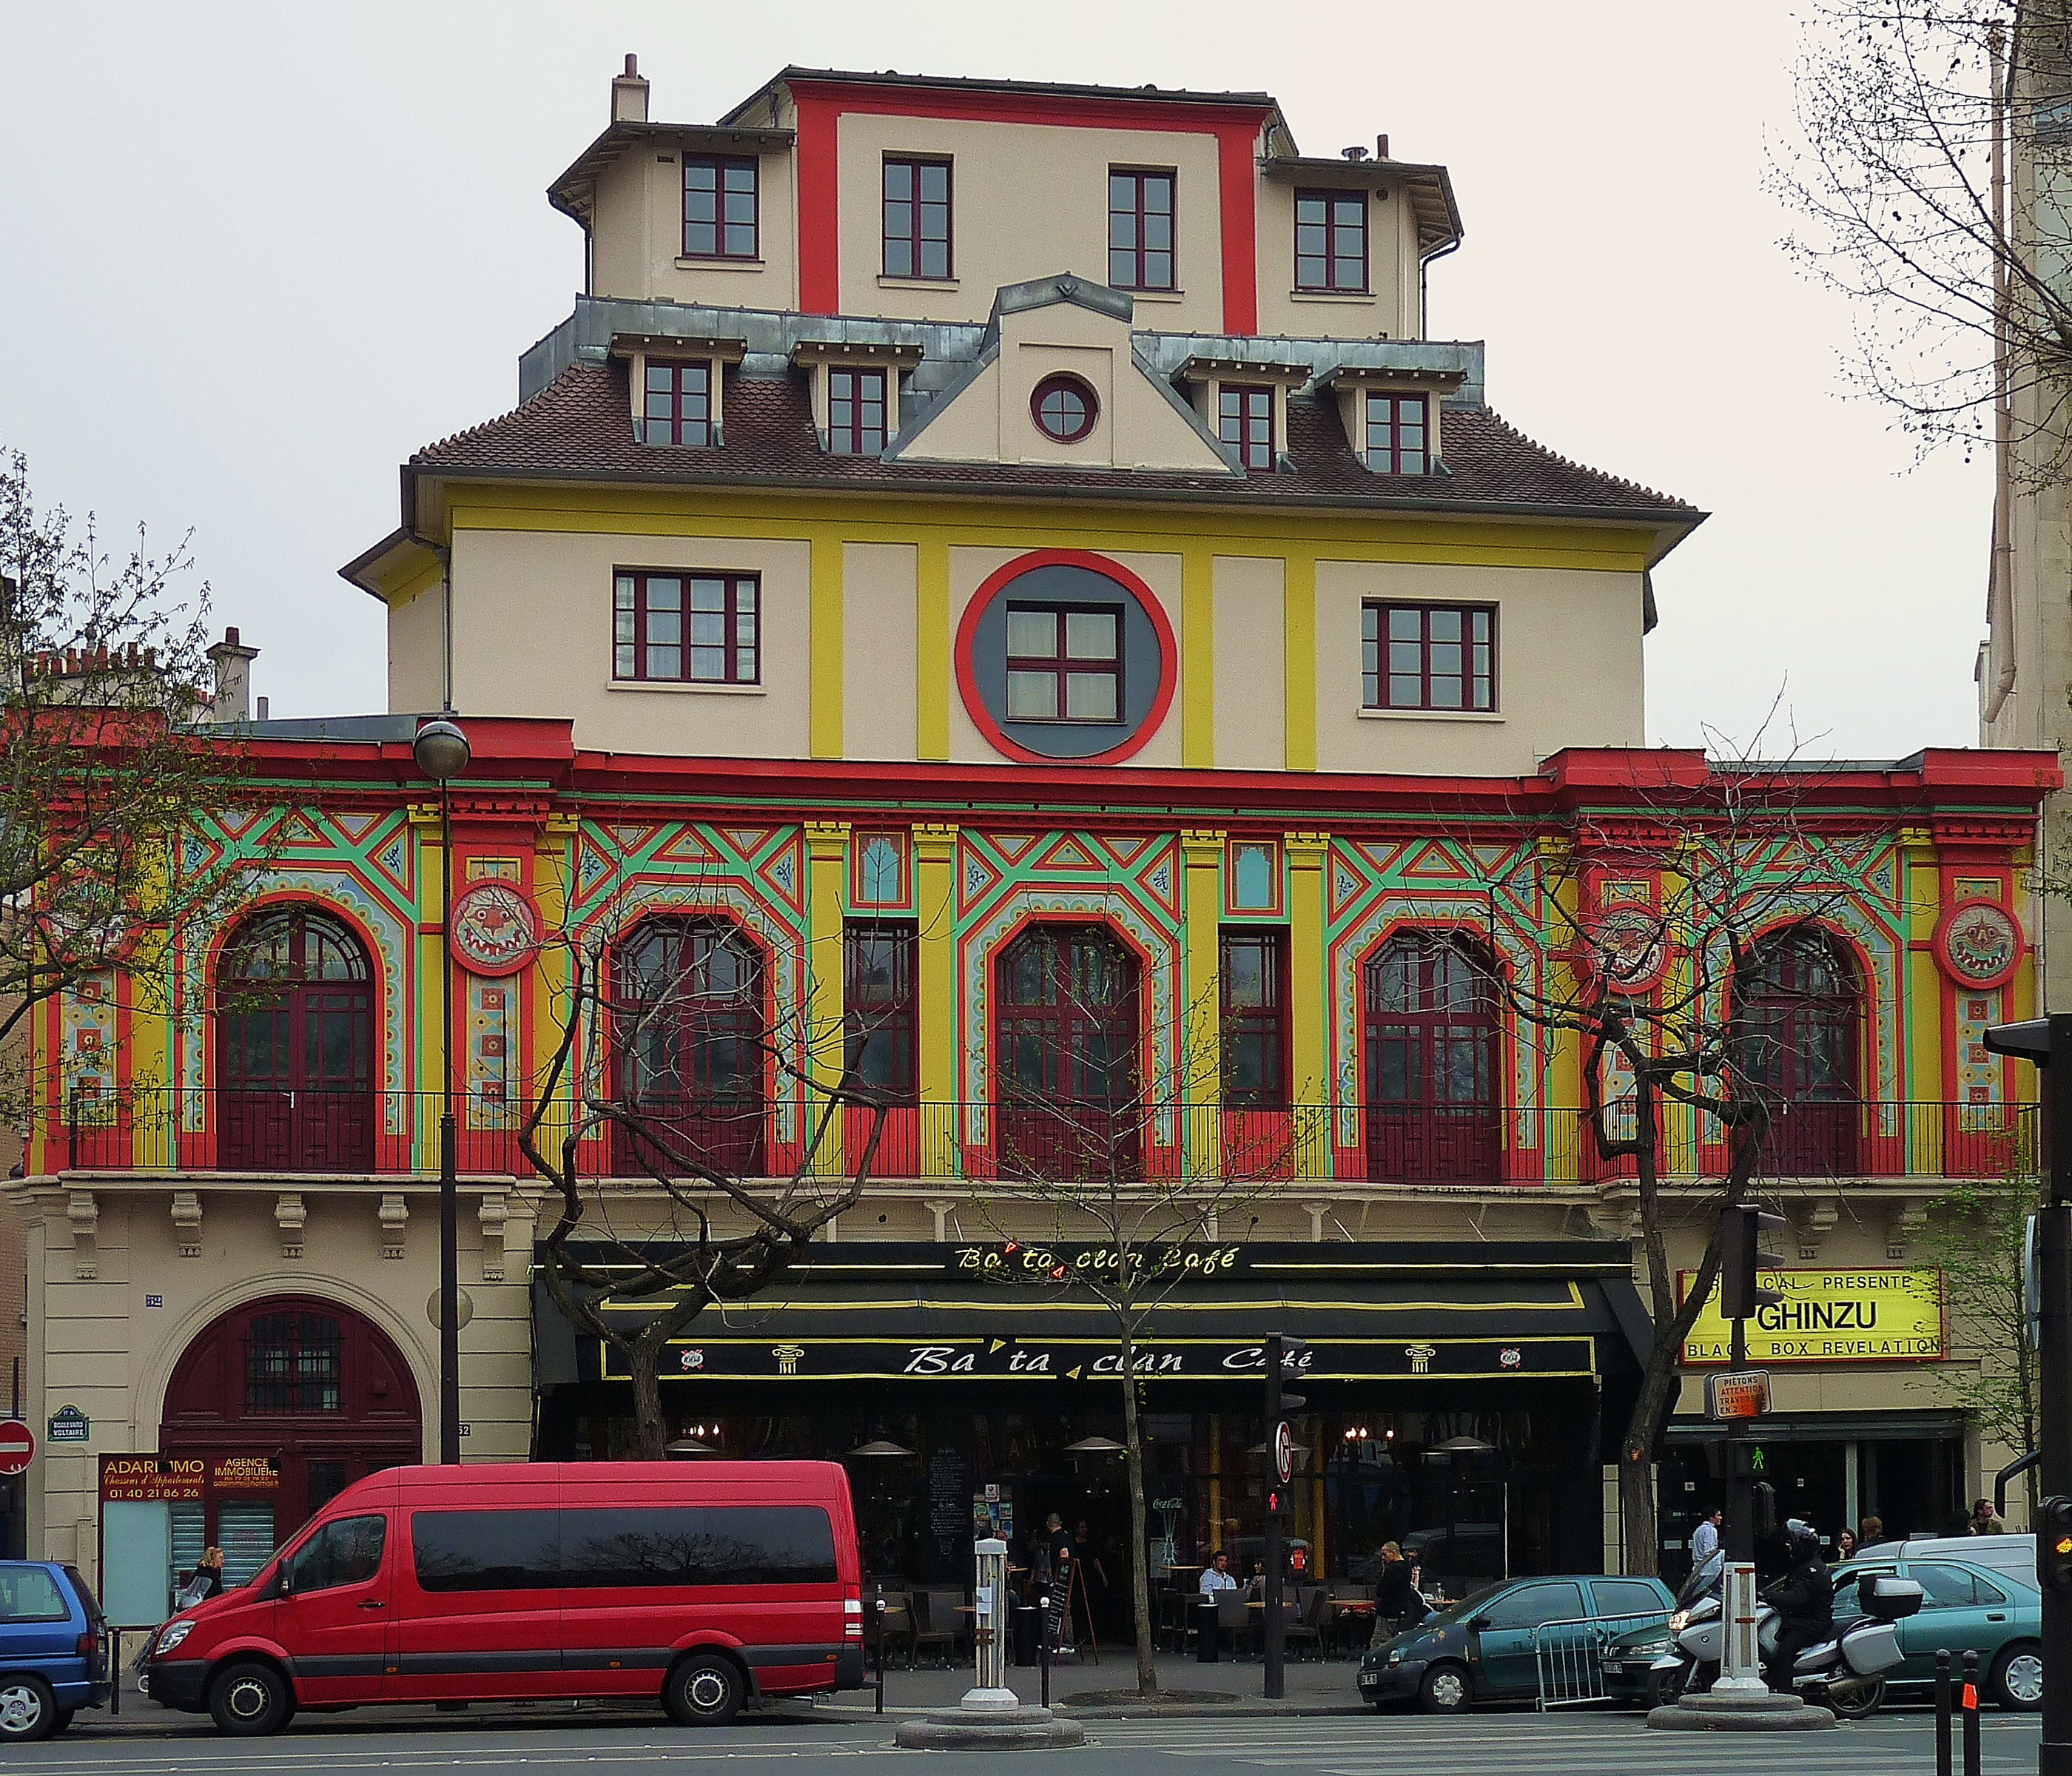 https://upload.wikimedia.org/wikipedia/commons/e/e6/Bataclan_theater%2C_Paris_3_April_2009.jpg